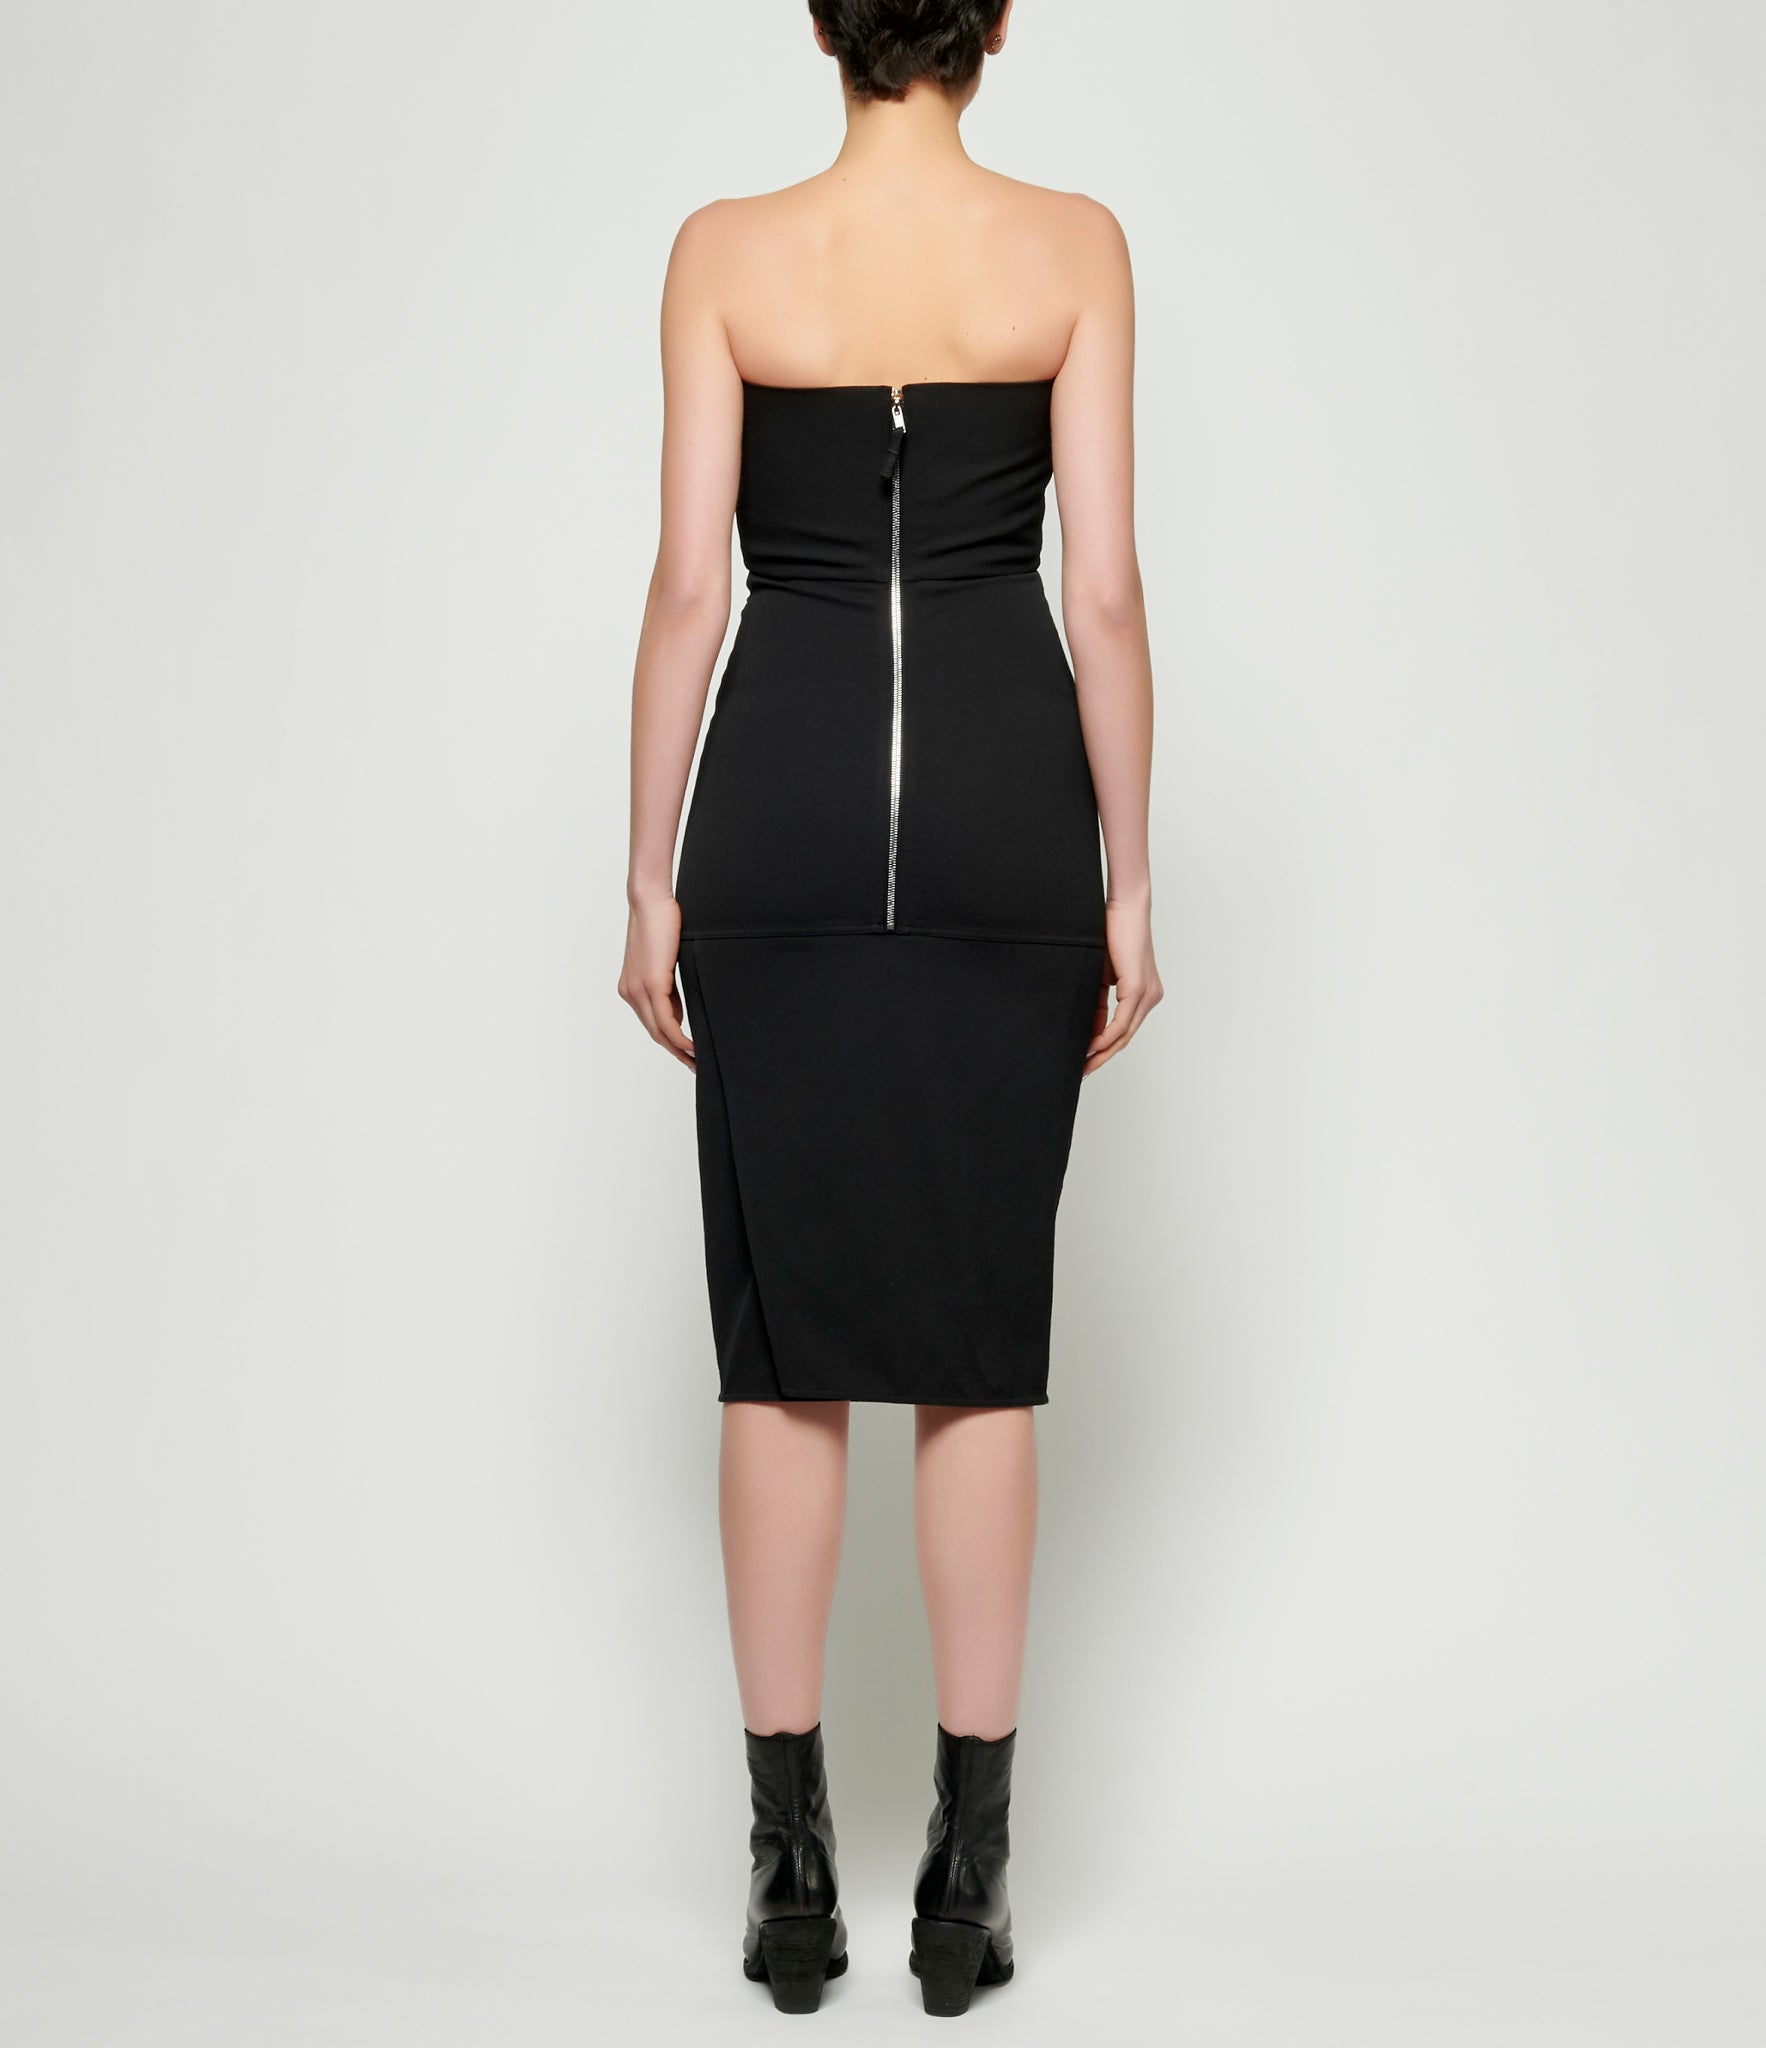 Rick Owens Bustier Dress